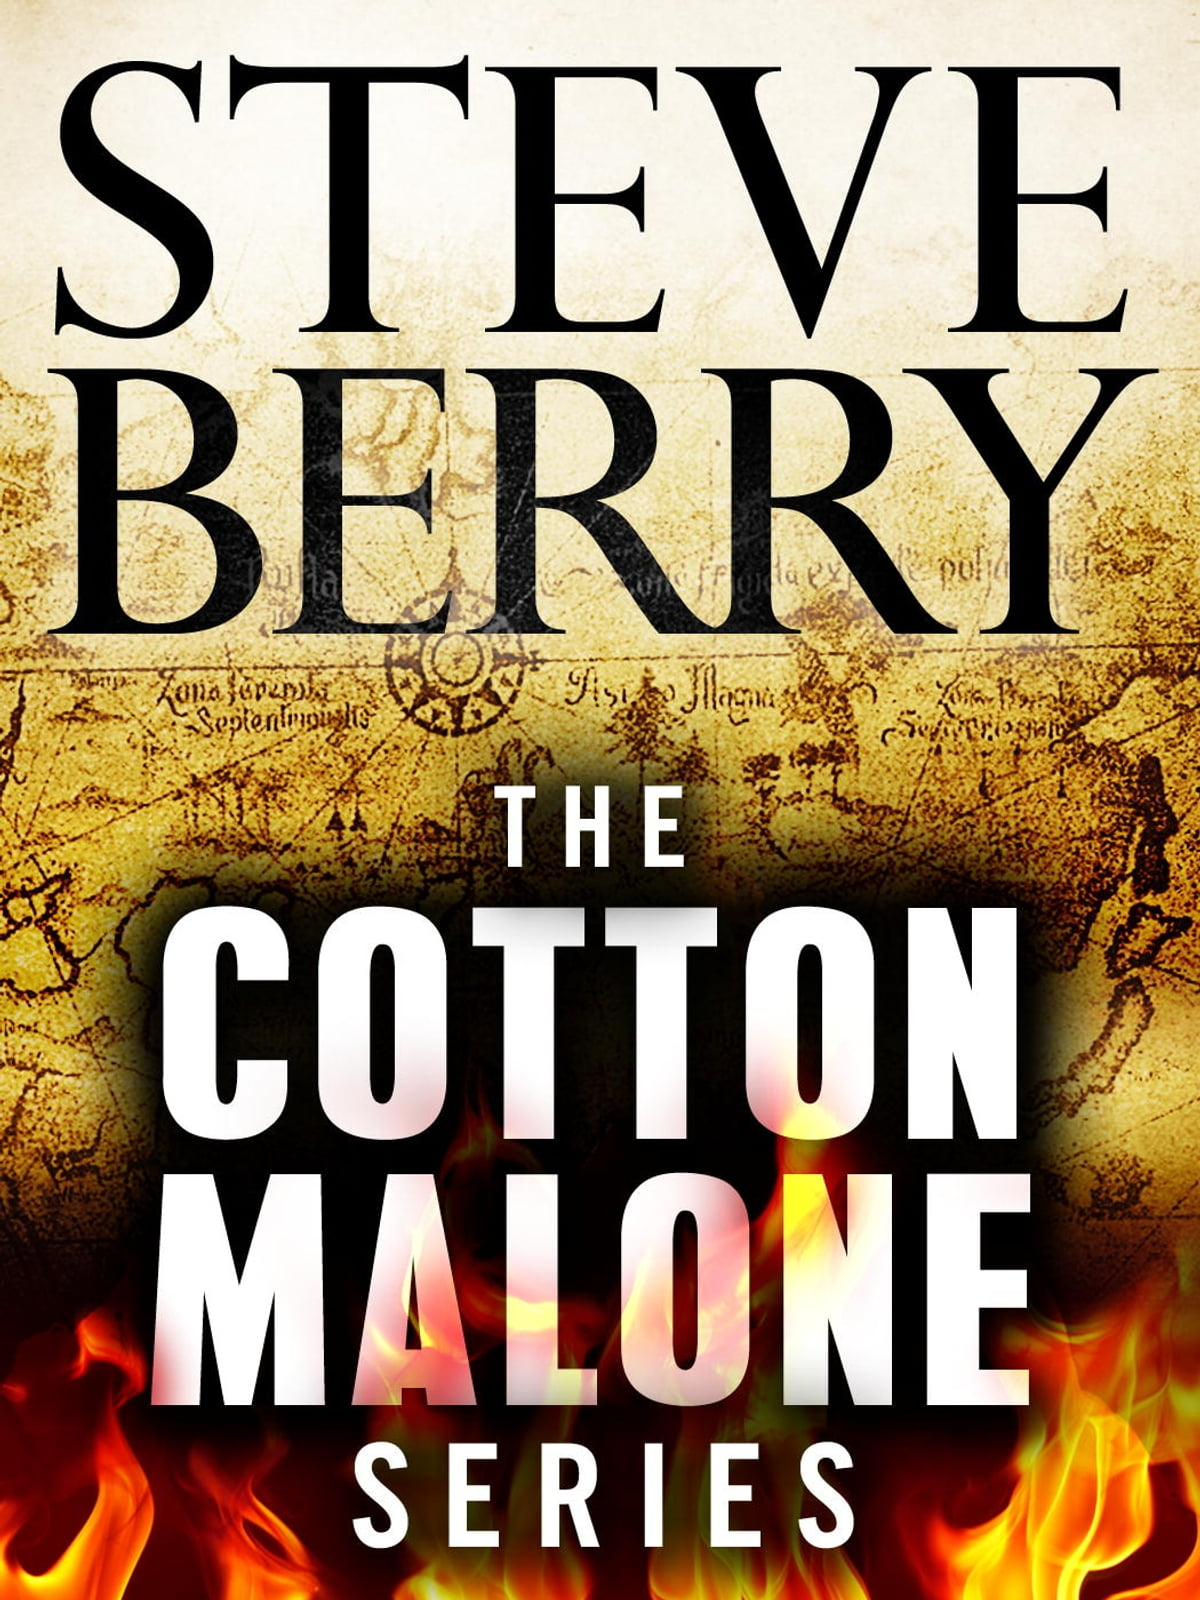 The Cotton Malone Series 9-Book Bundle eBook by Steve Berry - 9780812987850  | Rakuten Kobo